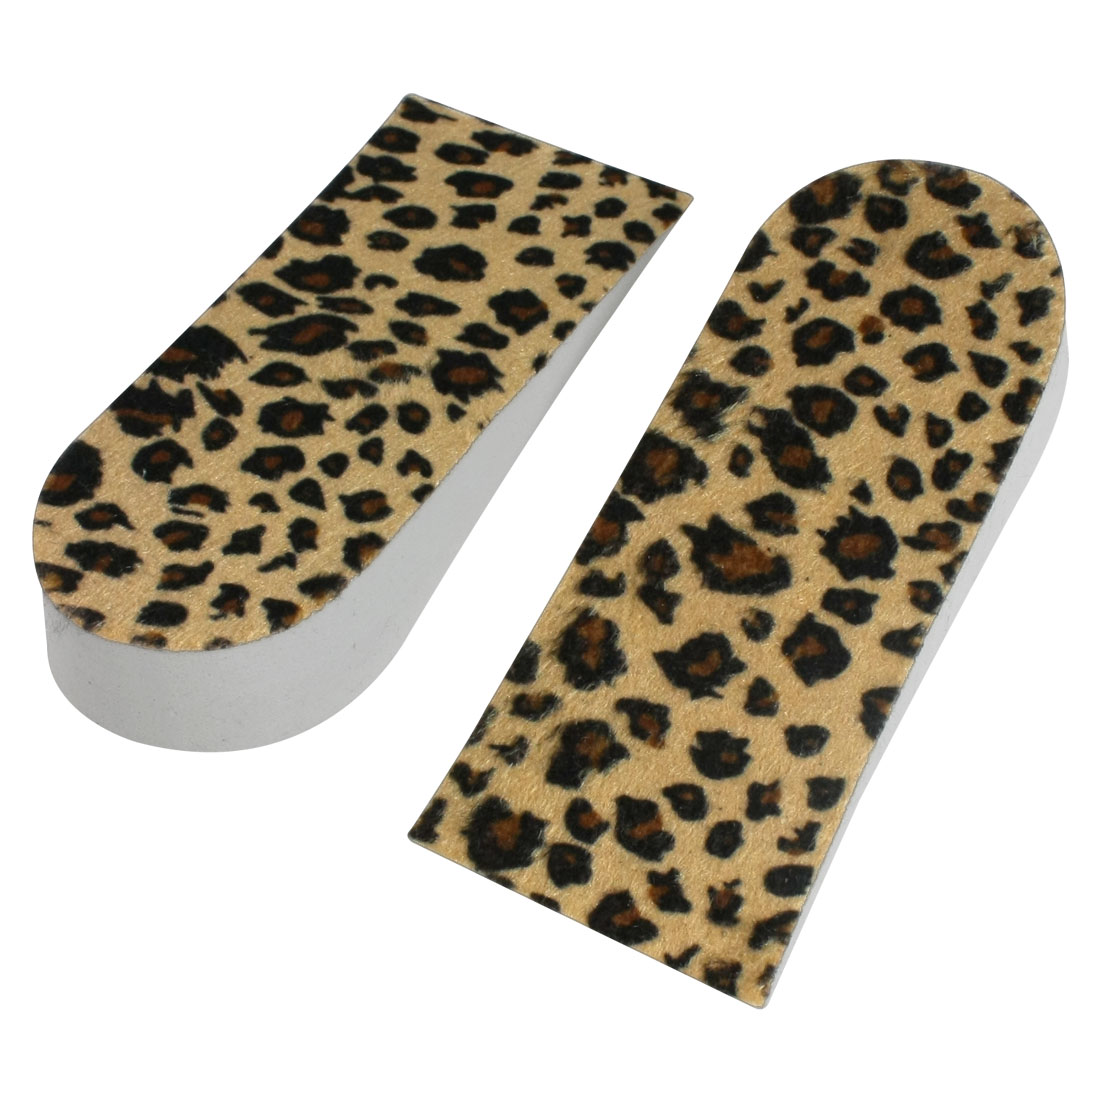 Leopard Print 2.5cm High Increase Insoles Heel Lift Shoes Pads Pair Colorful